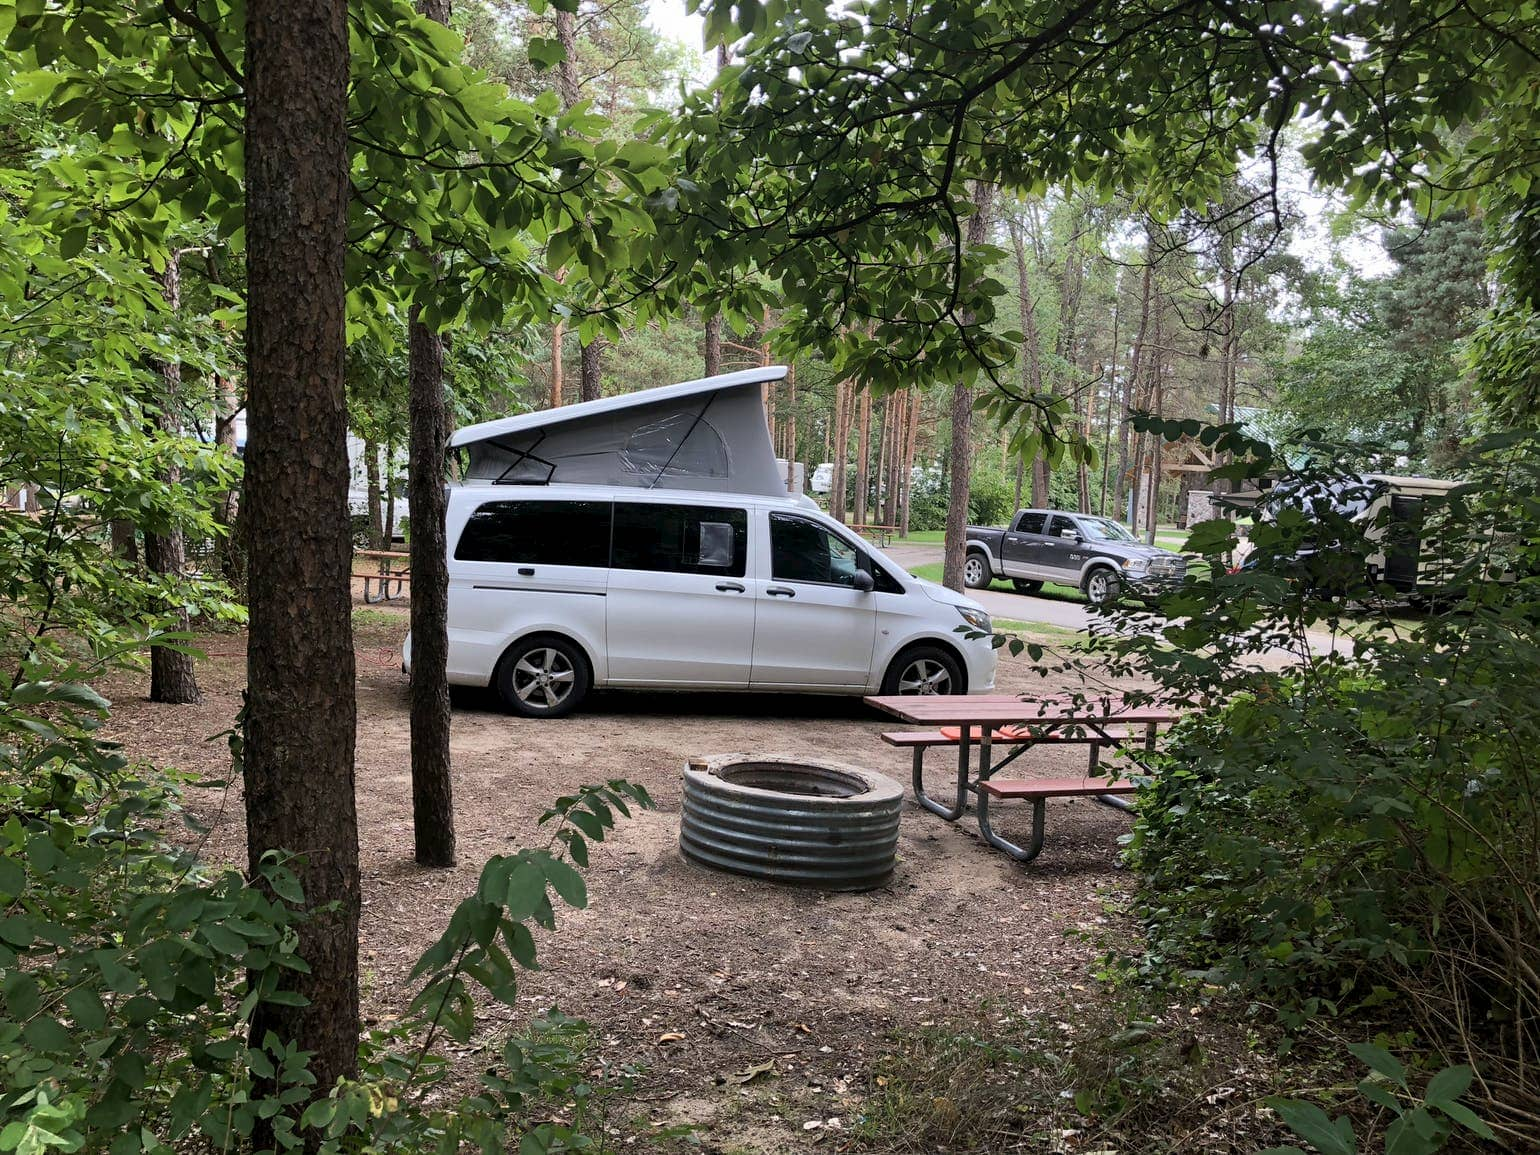 Pop top camper van in campsite with fire ring and picnic table in the Michigan forest.